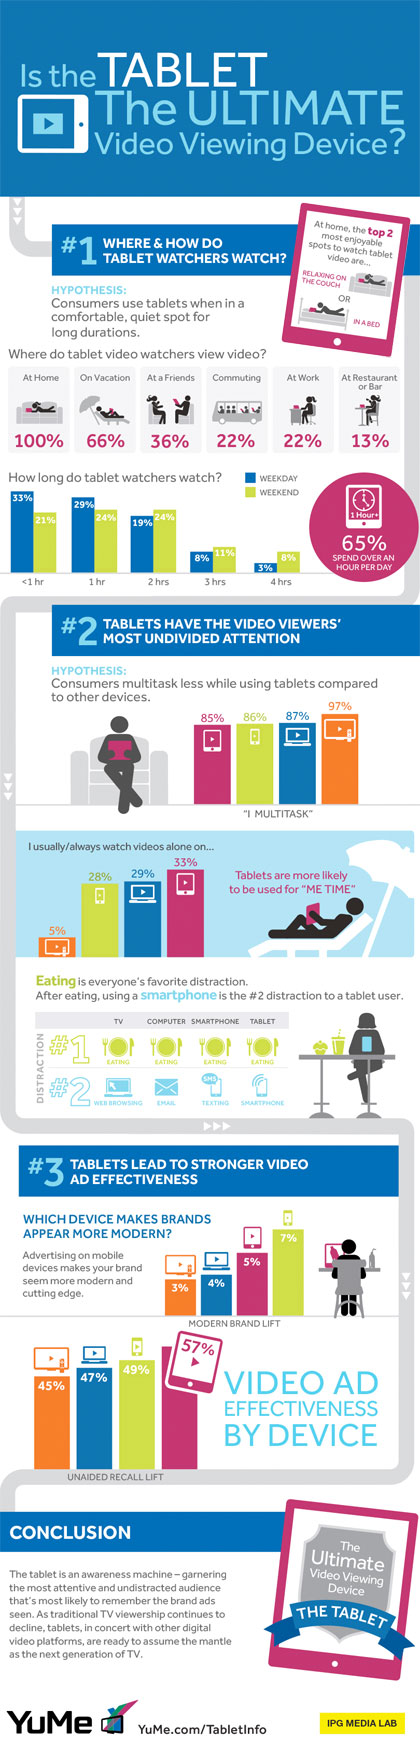 Tablets-Used-for-Video-Viewing-Infographic1